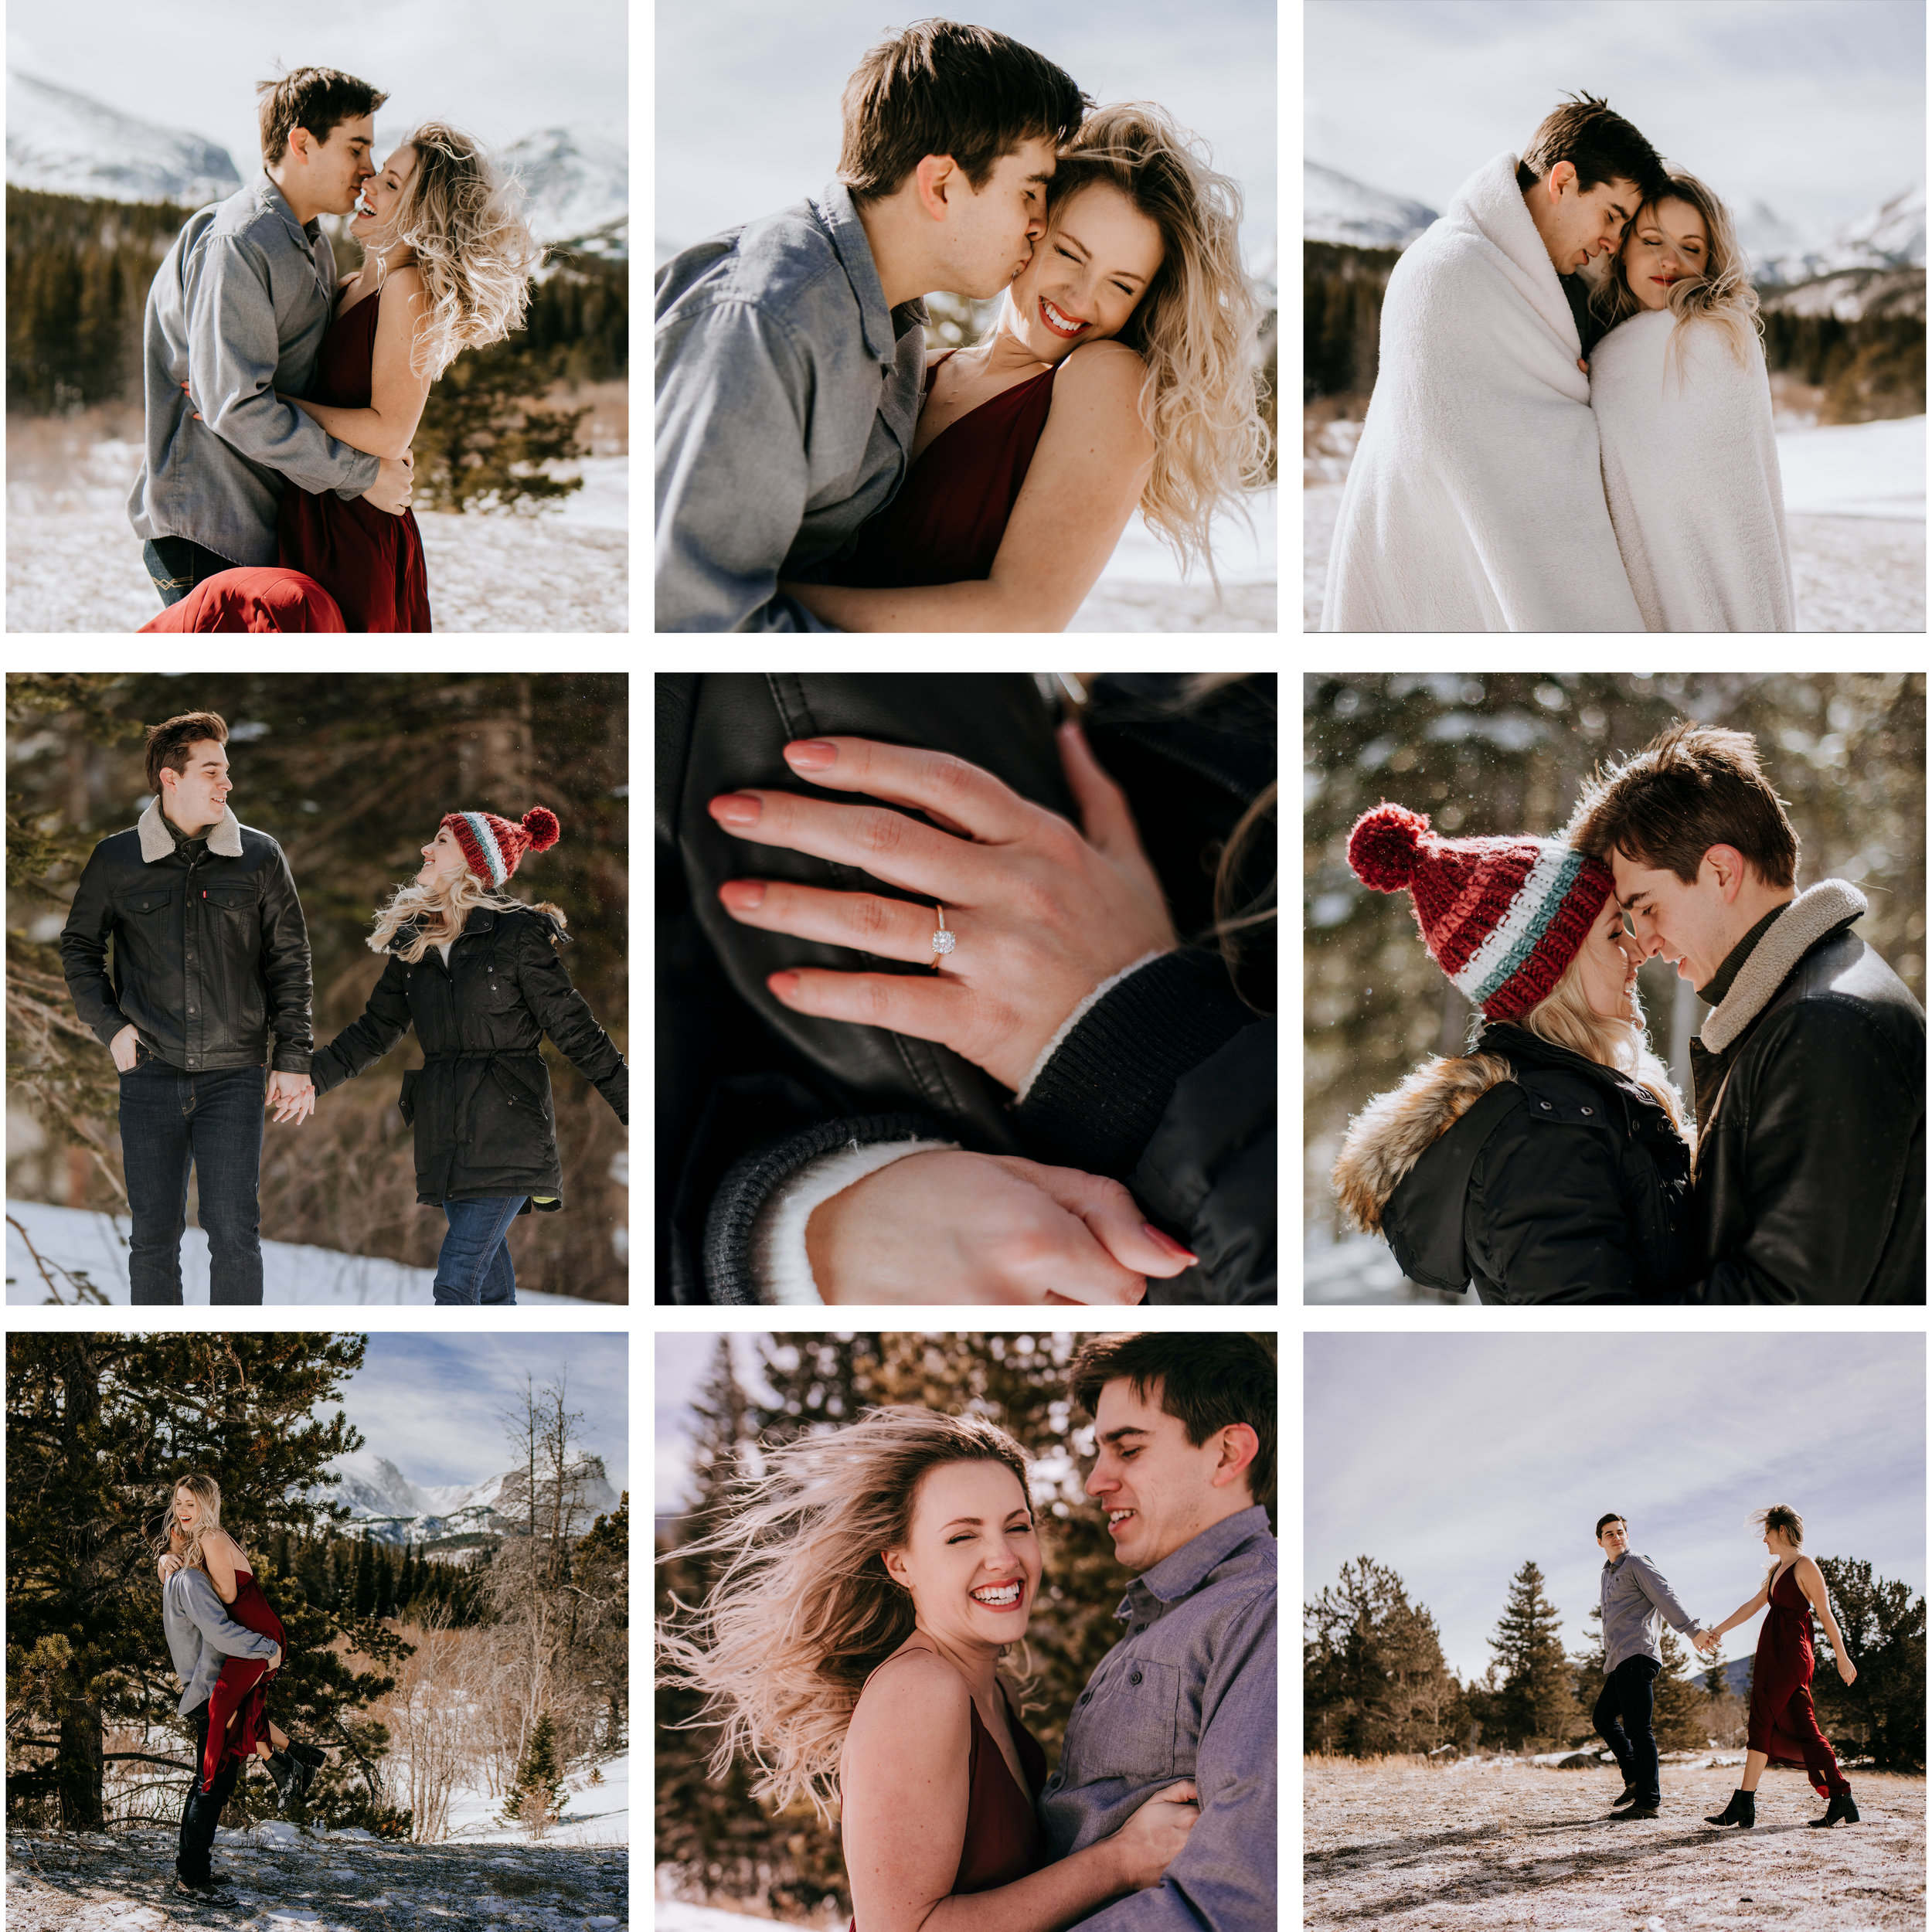 breelle_hilsenrath_photography_rocky_mountain_national_park_engagement.jpg